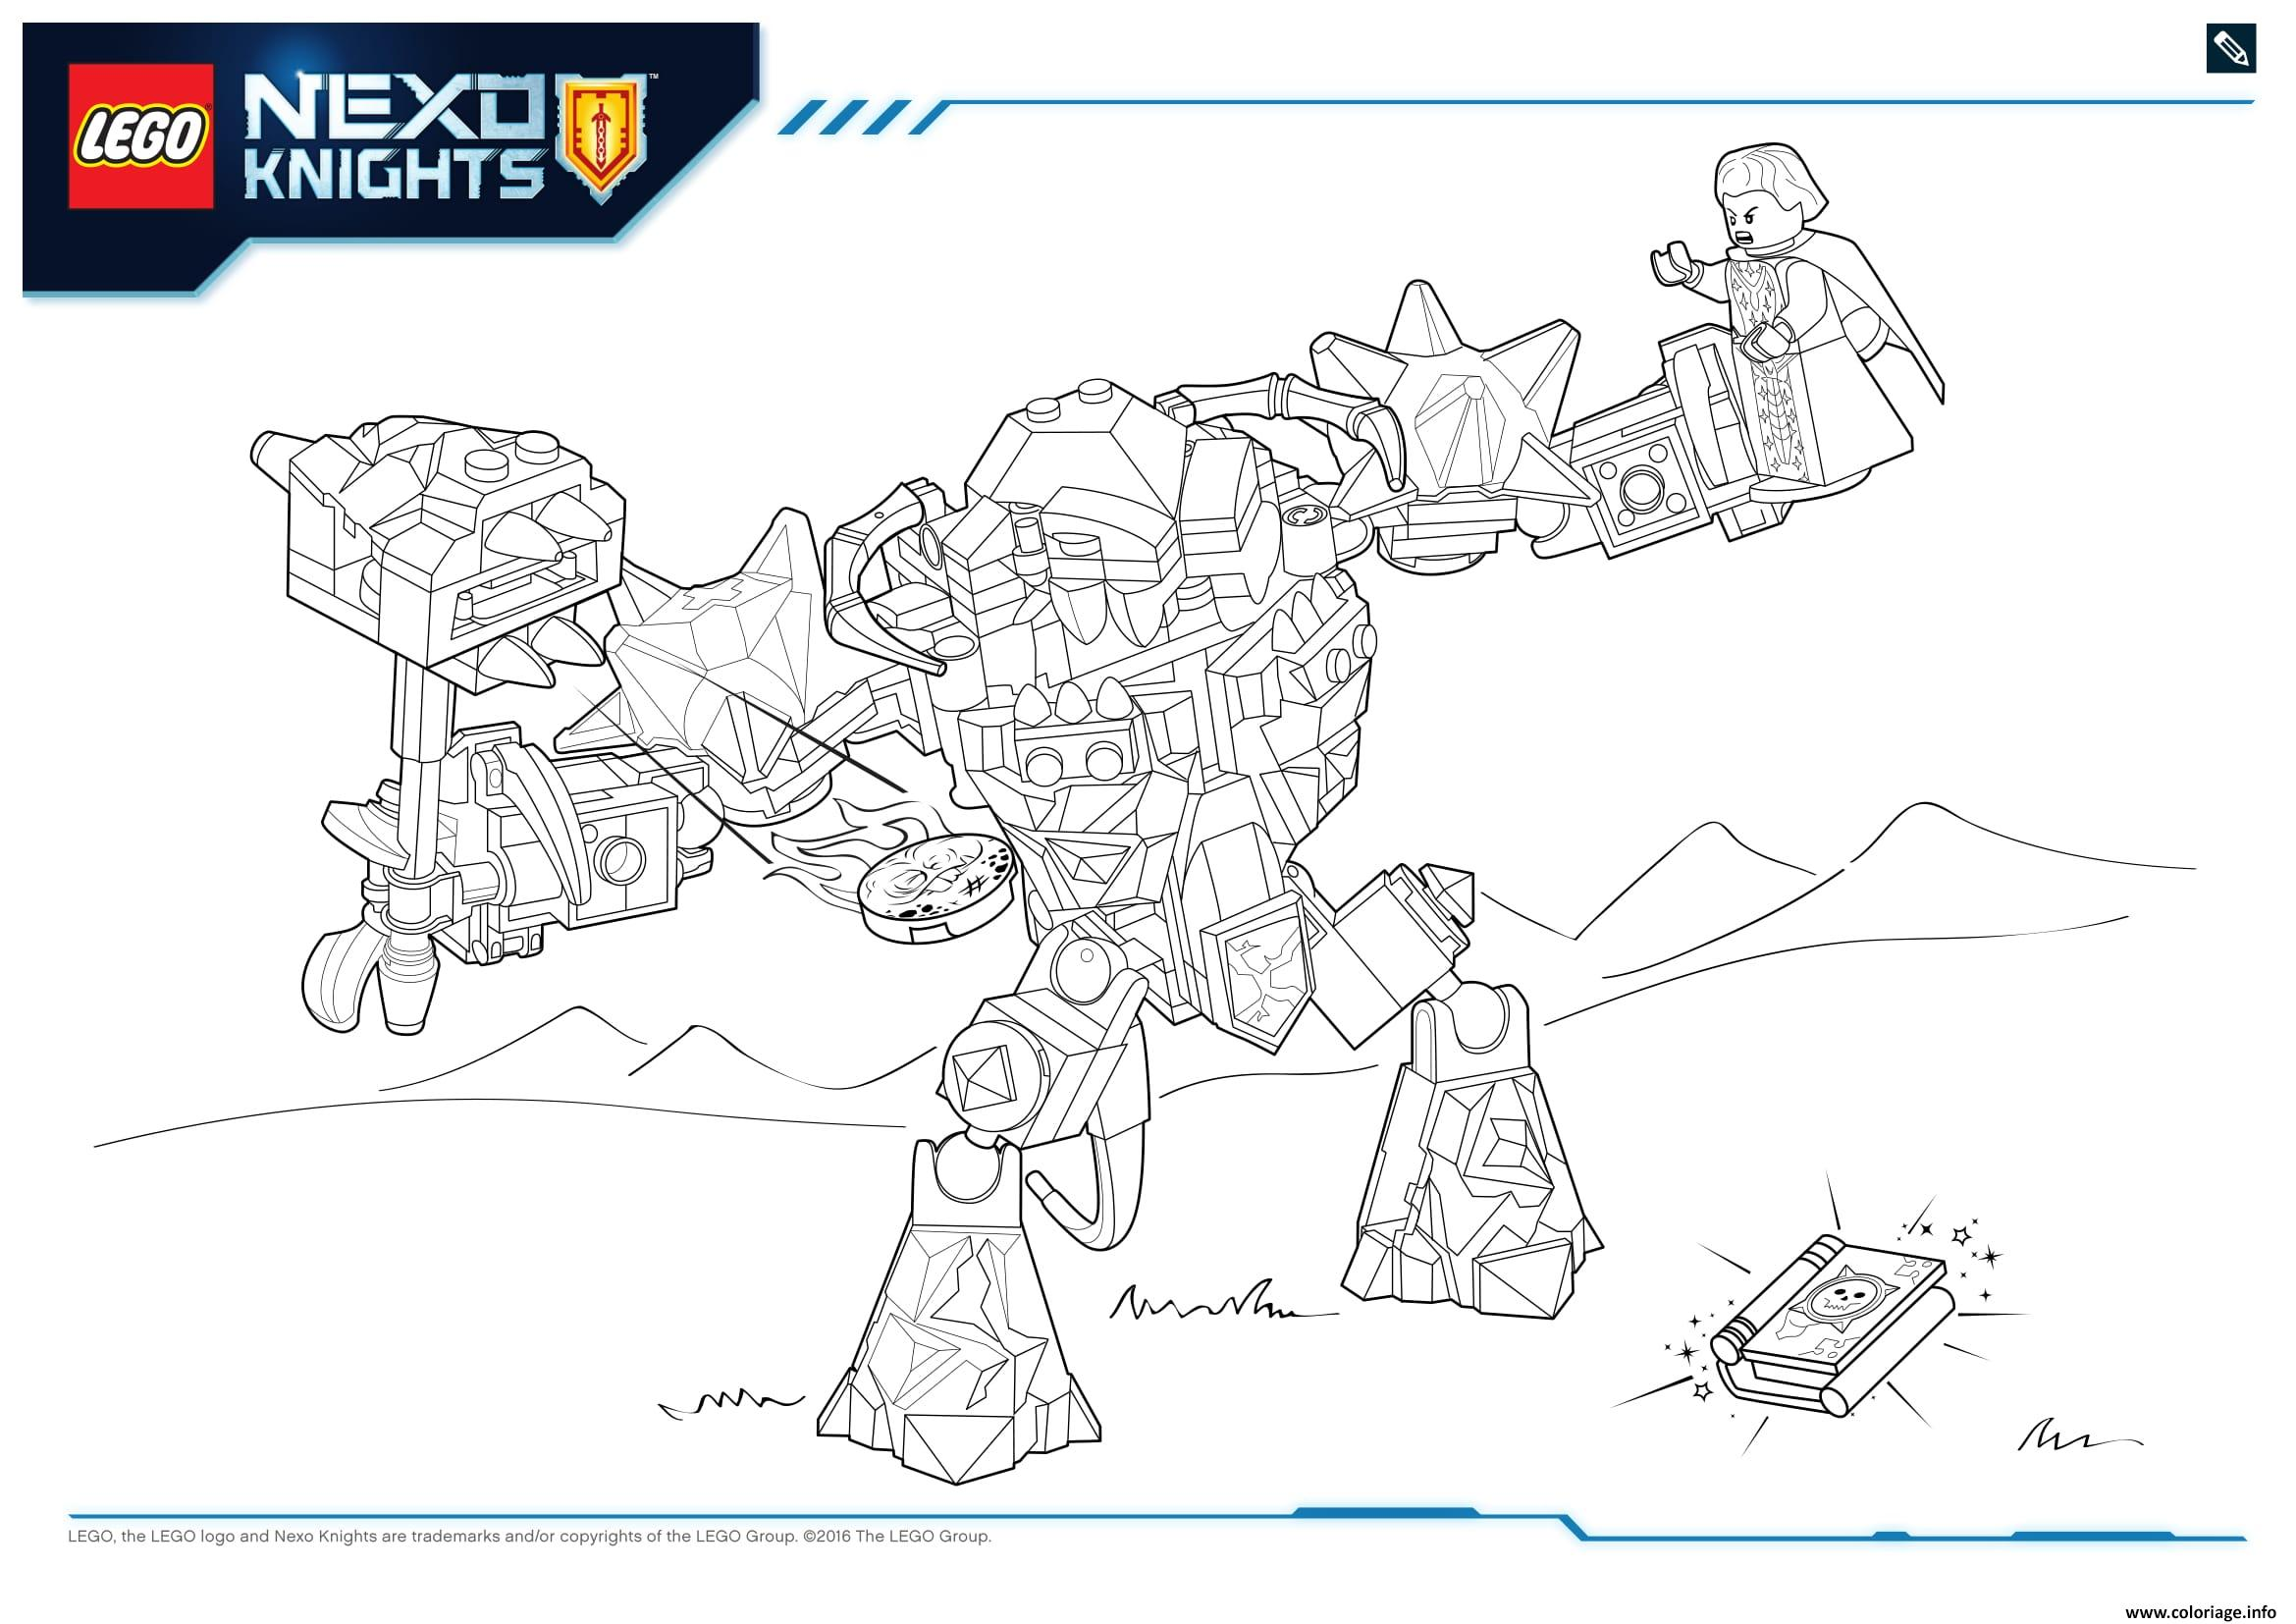 Coloriage Lego Nexo Knights Monster Productss 3 Dessin à Imprimer